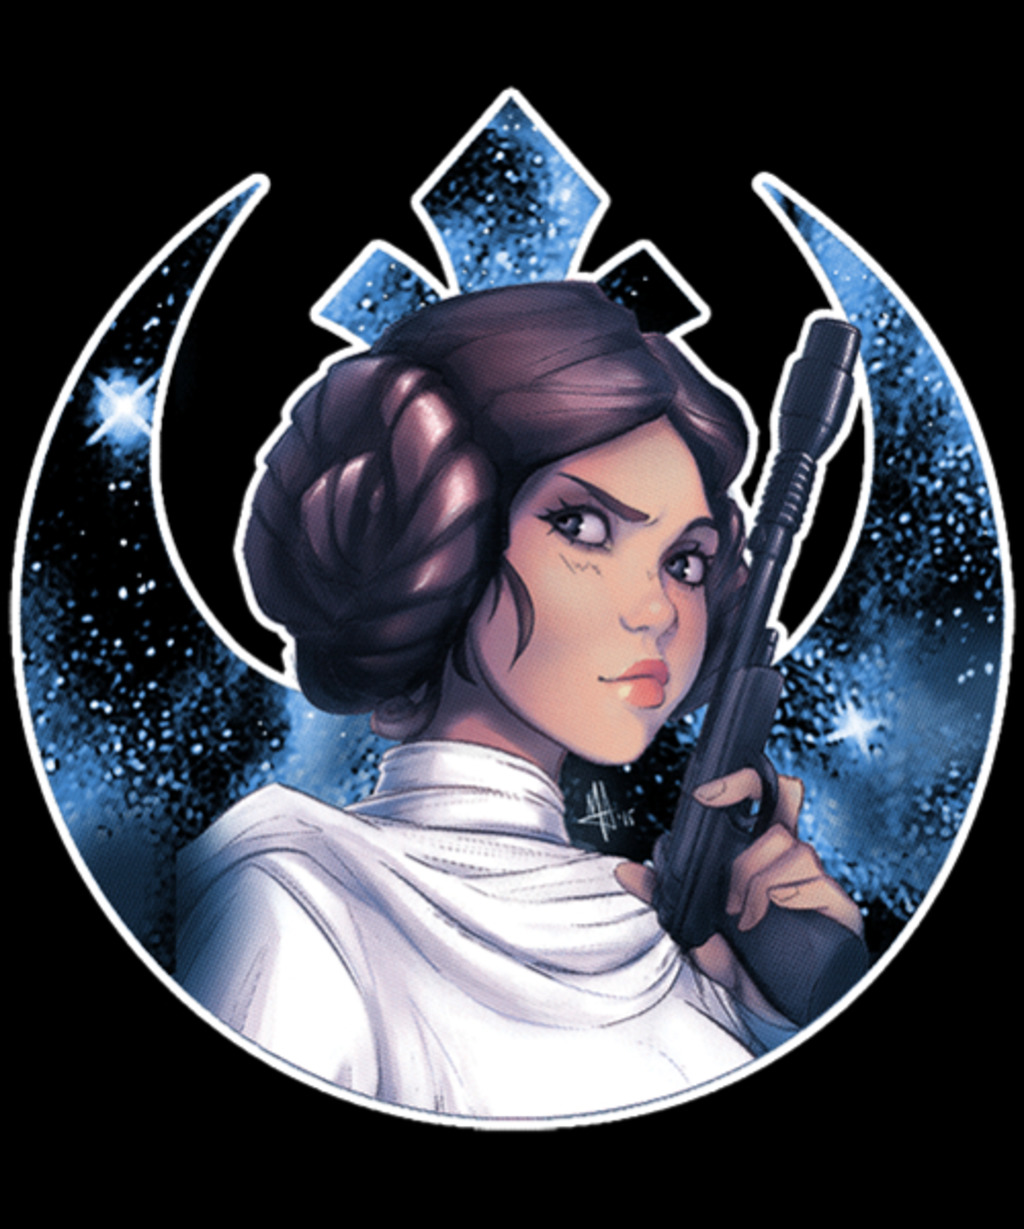 Qwertee: You're My Only Hope